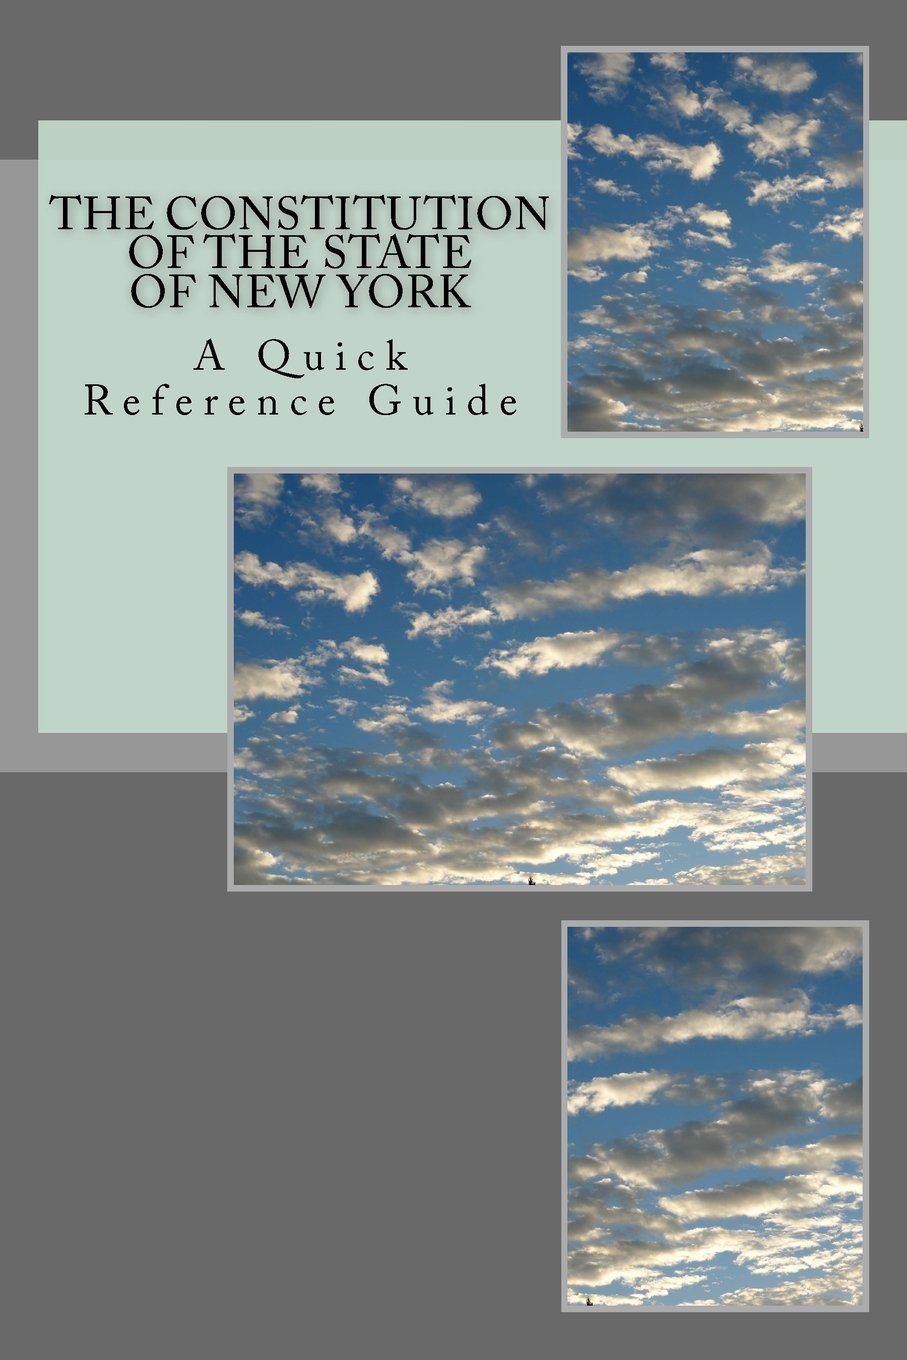 Download The Constitution of the State of New York: A Quick Reference Guide PDF